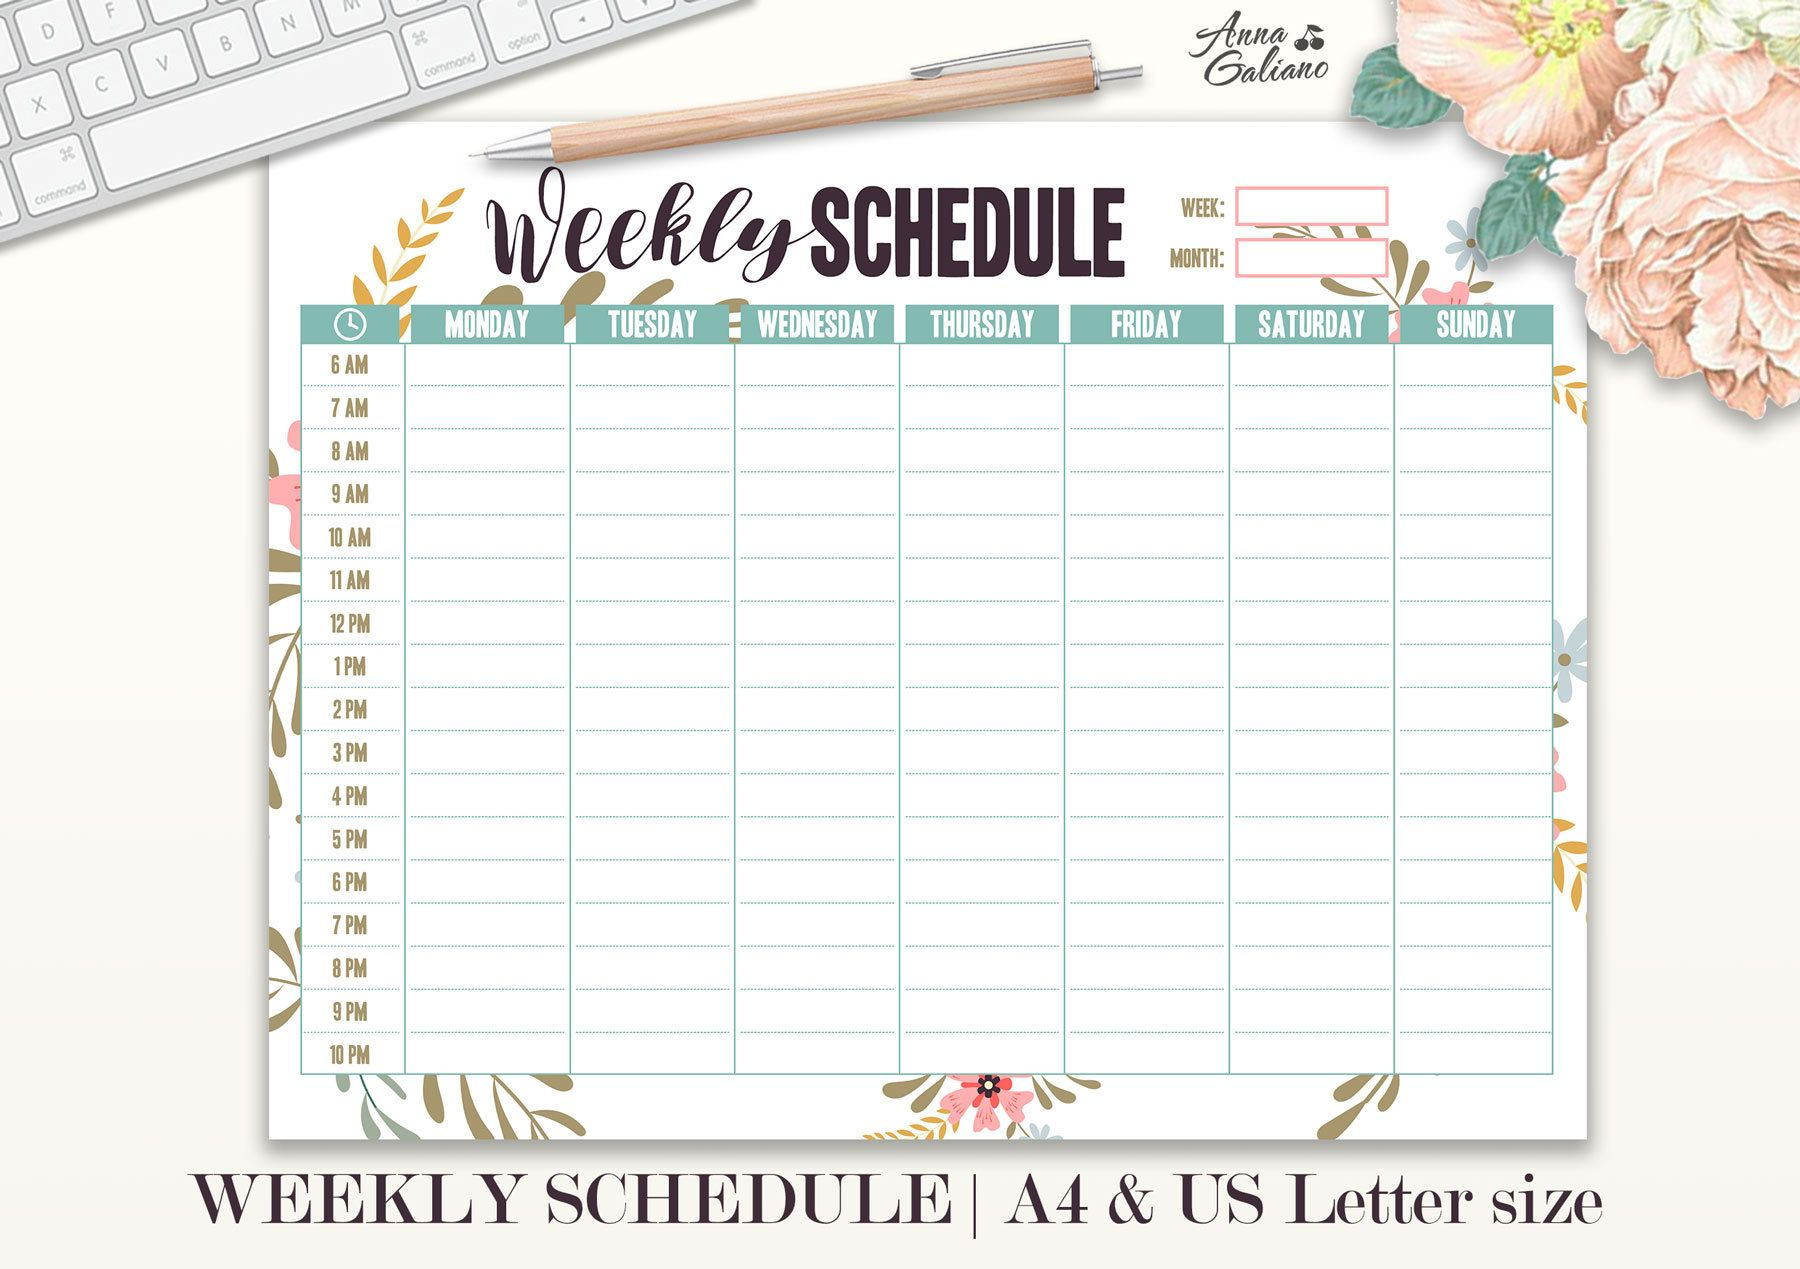 graphic about Weekly Hourly Planner Pdf referred to as Weekly Routine Printable, Hourly Planner, Weekly Organizer